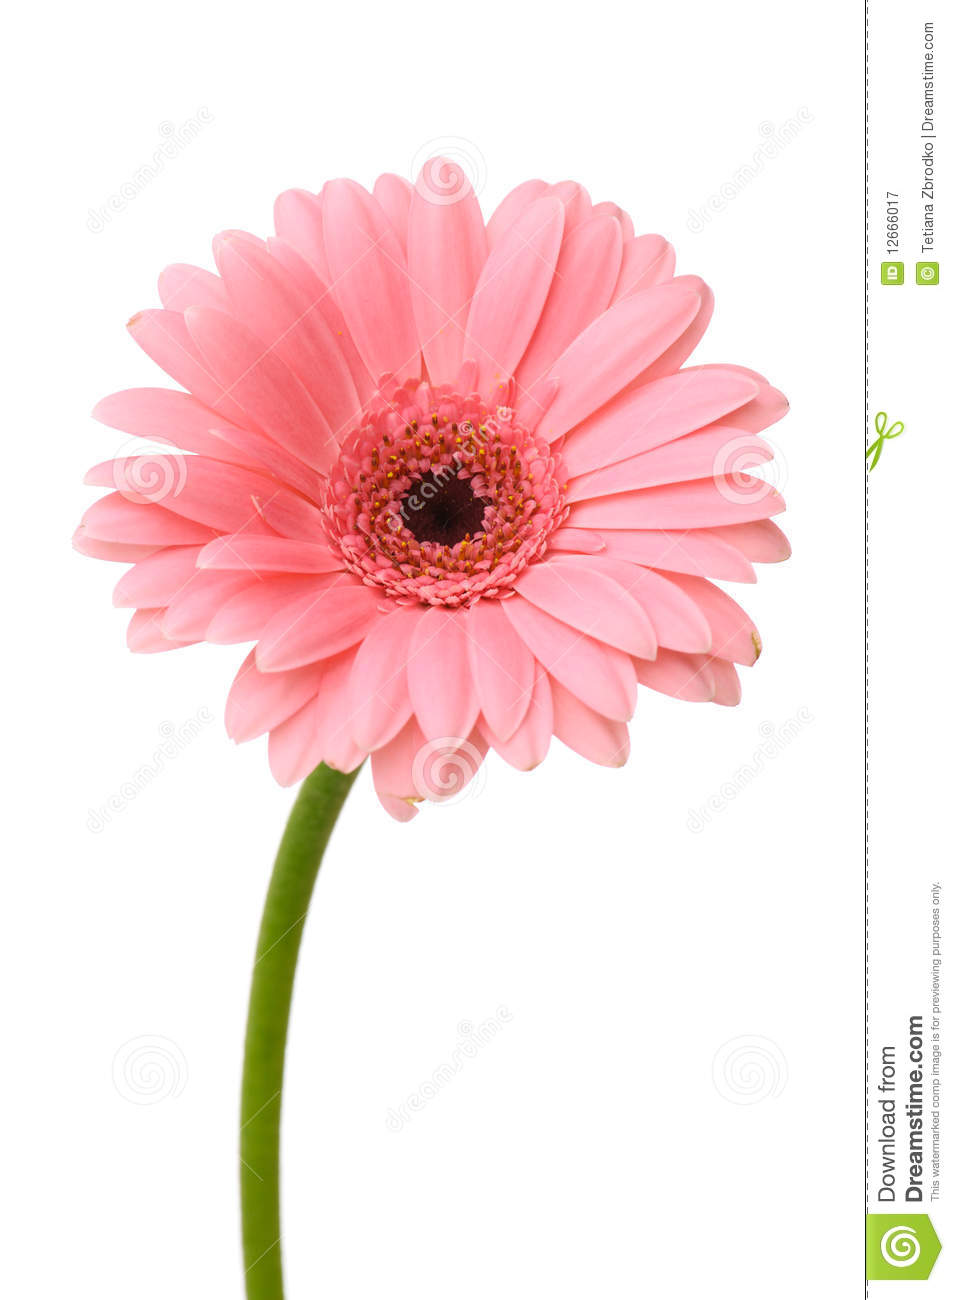 Pink Daisy Flower Stock Image Image Of Beautiful Abloom 12666017